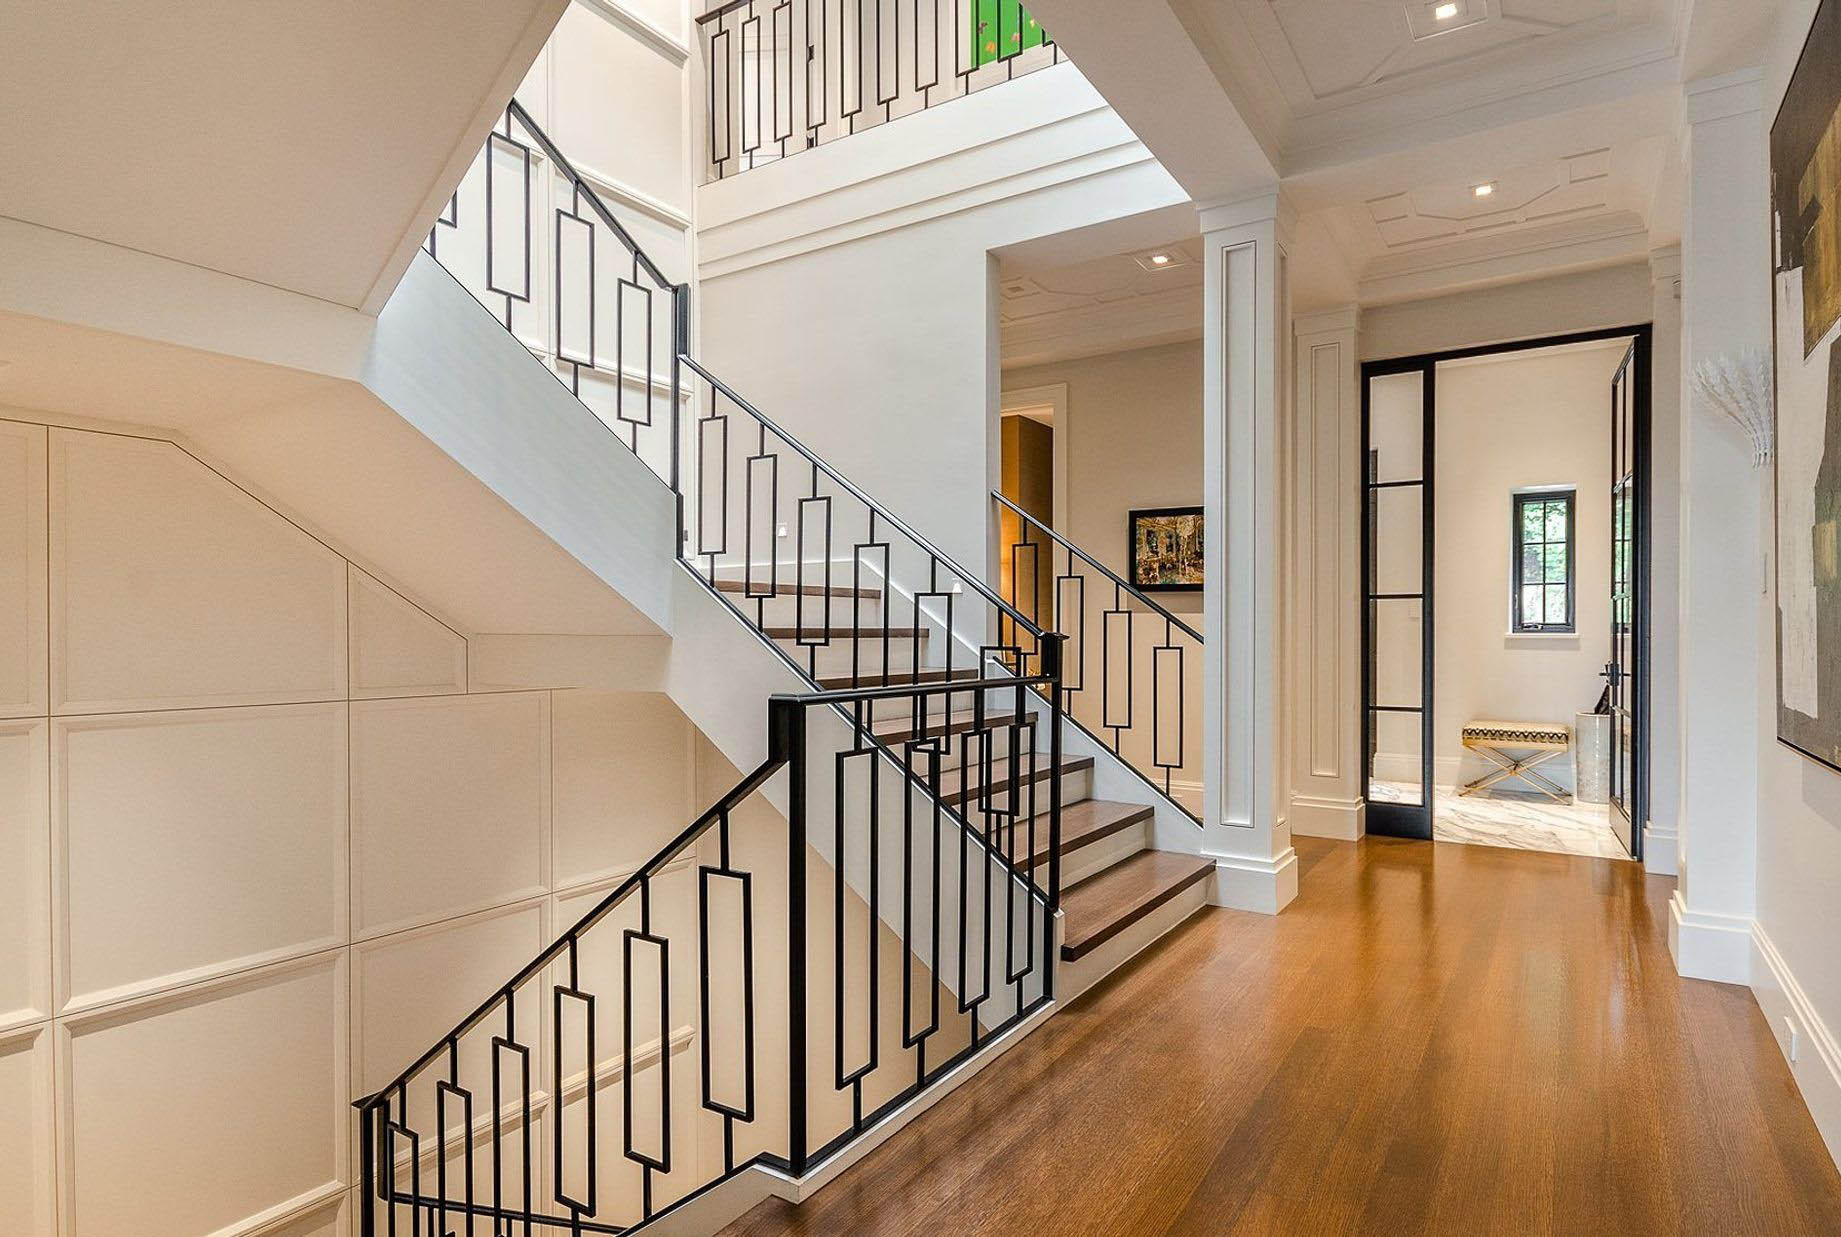 Transitional modern staircase design made with black iron. Custom wall paneling adorns the stair walls. Wood floors with white risers.